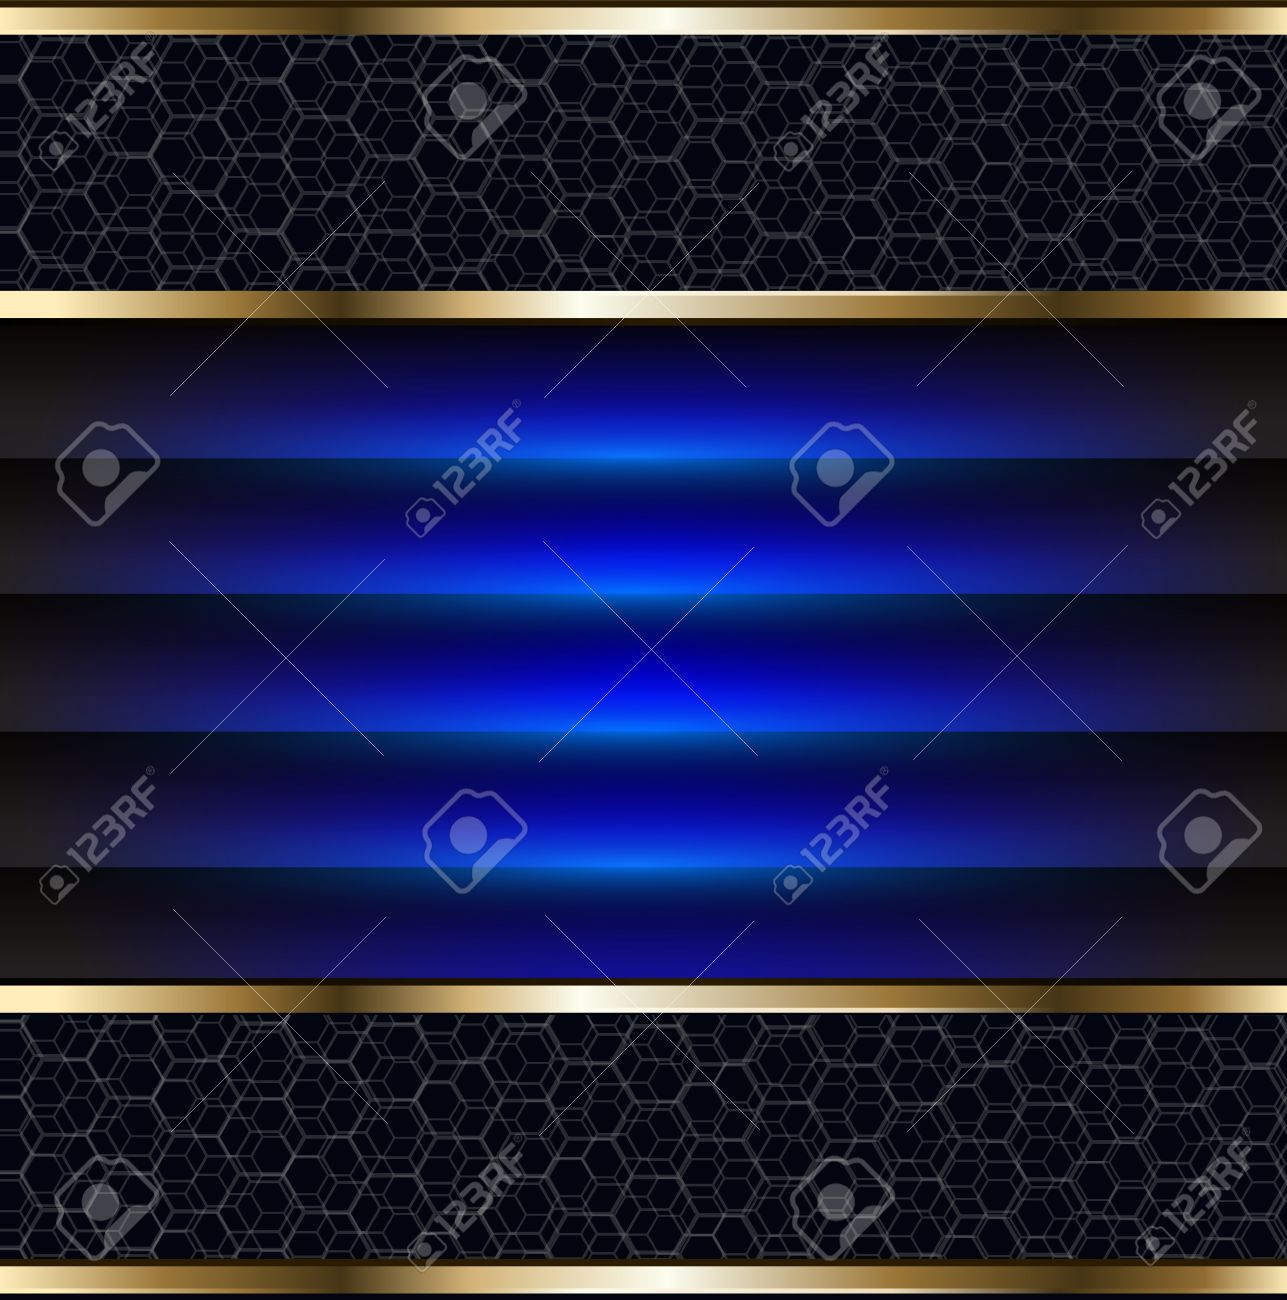 Abstract background elegant blue and gold, vector. Stock Vector - 12282501